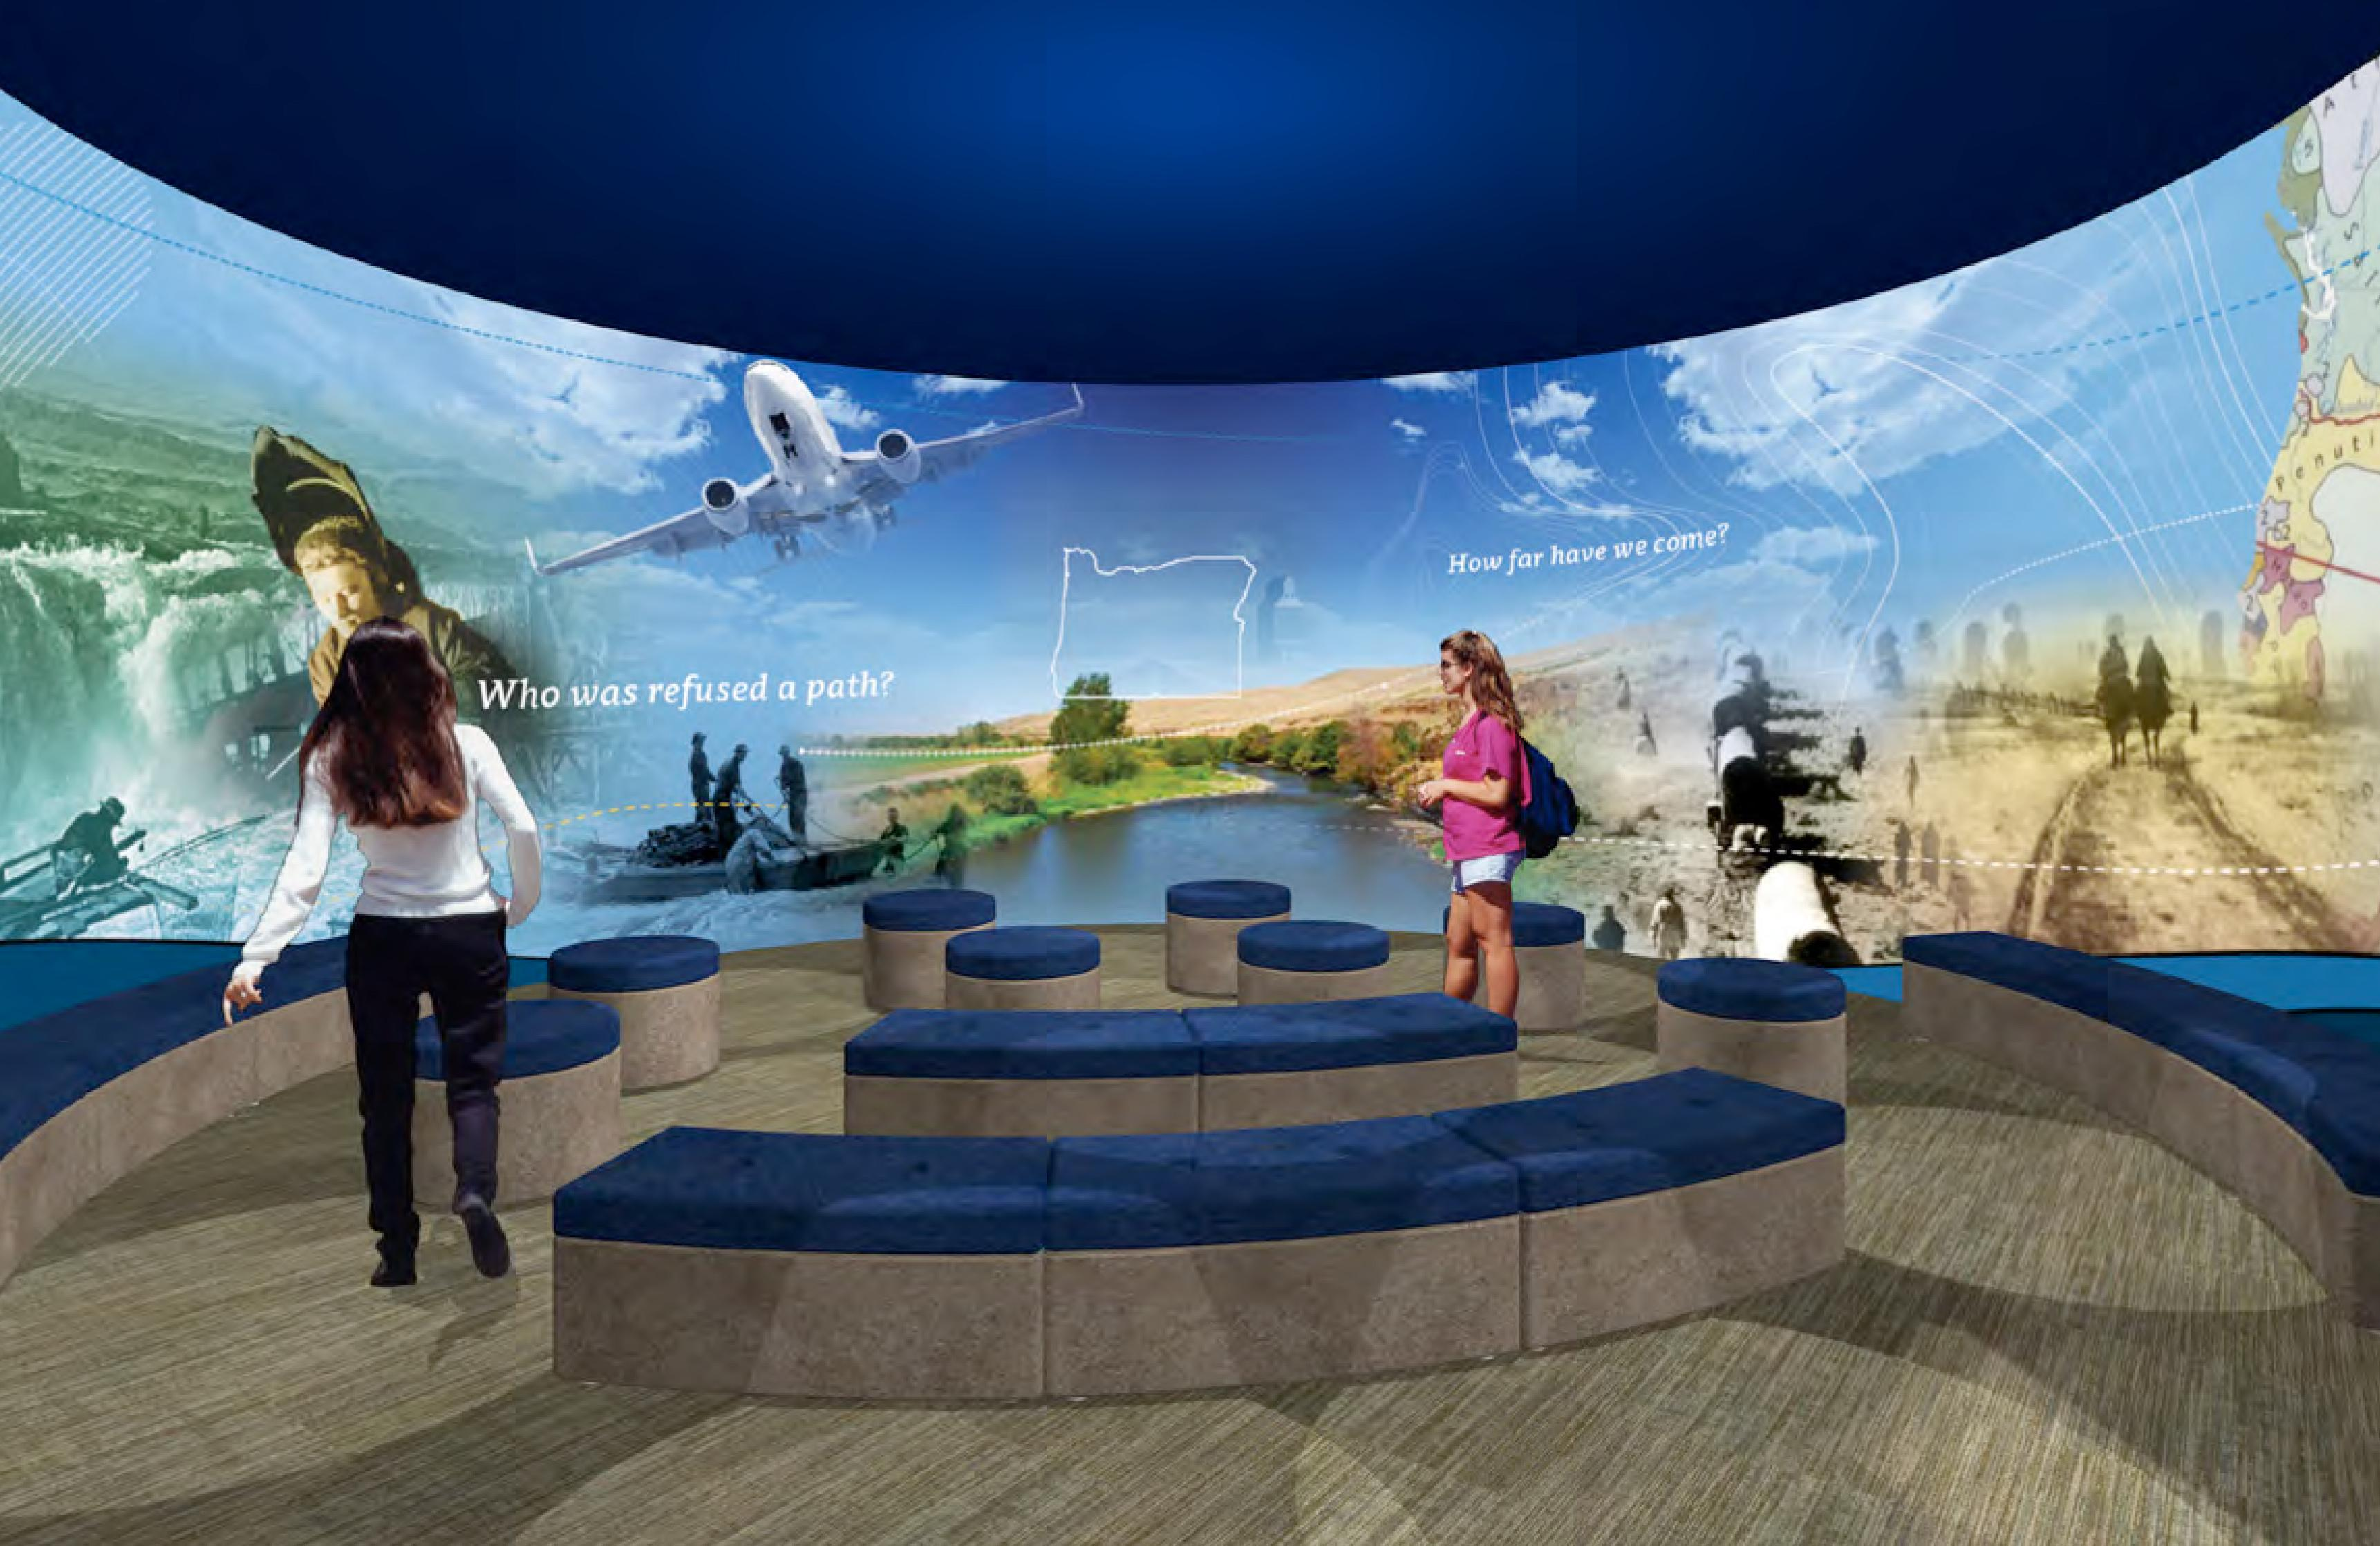 The 7,000 square foot Experience Oregon exhibit will welcome visitors with a 180 degree intro theater. From there, visitors can walk through a covered wagon. Construction begins May 1 with opening planned for February 14, 2019. (OHS)